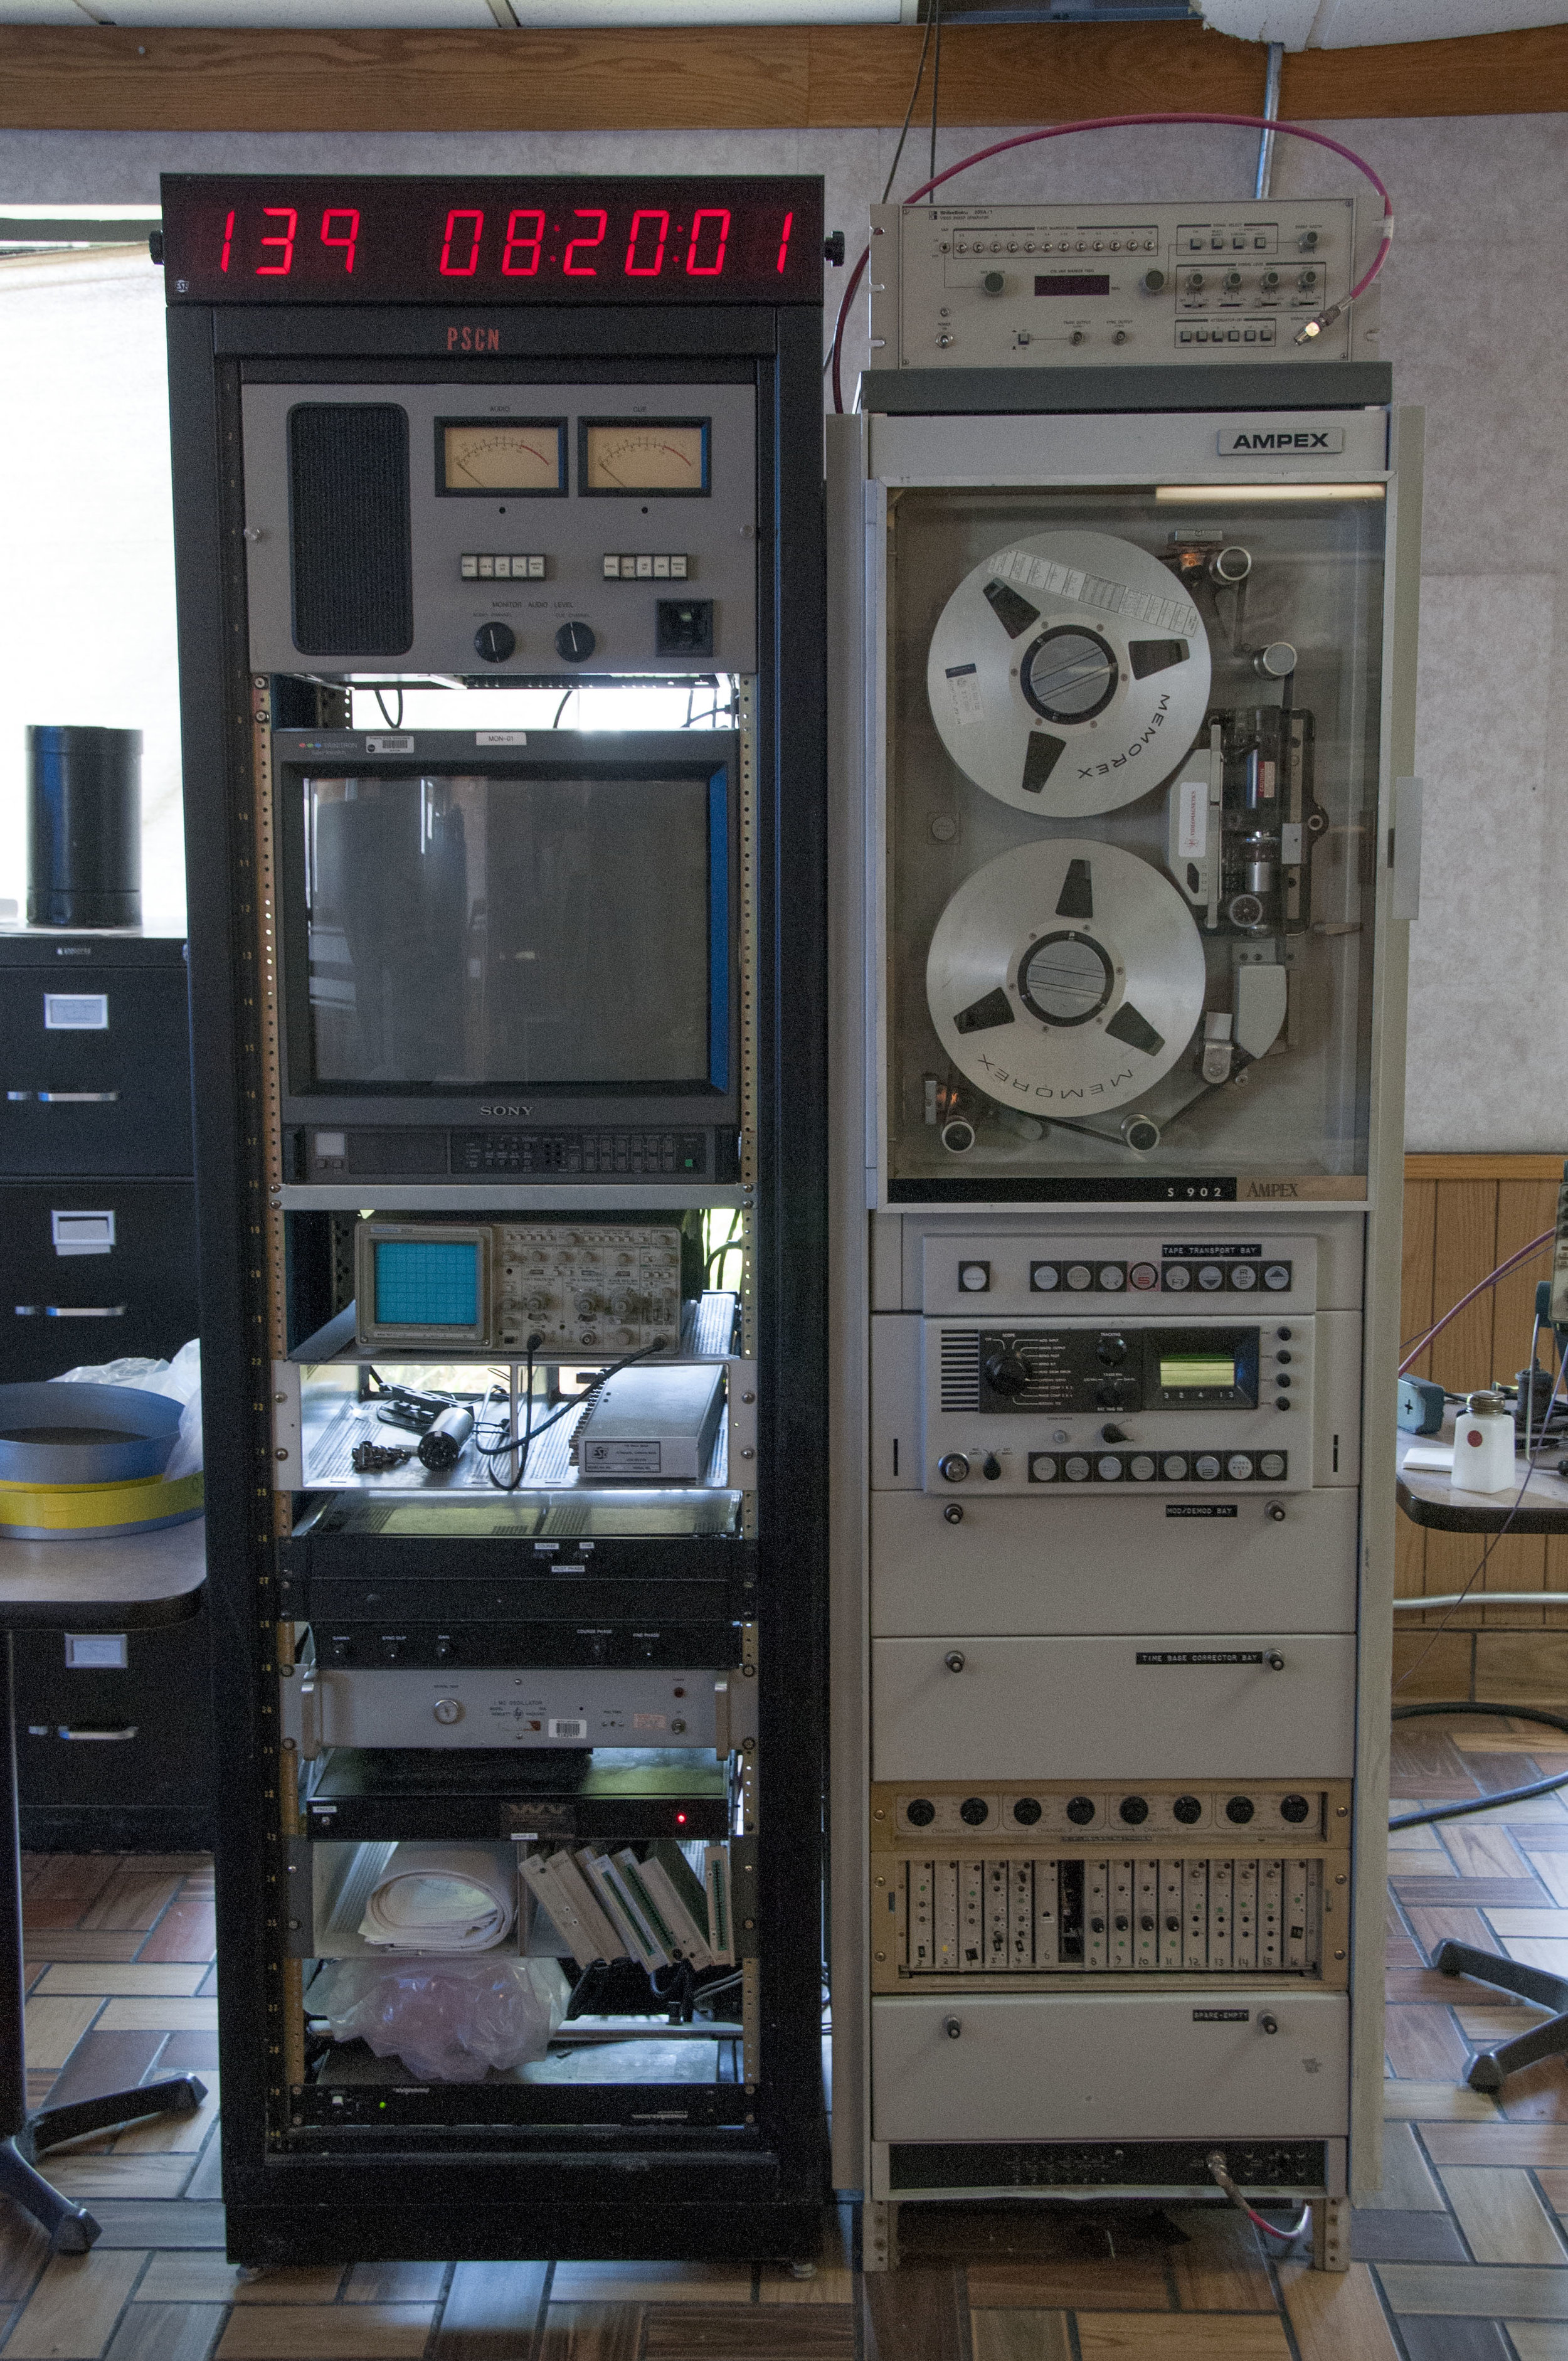 The machine that reads the Ampex tapes.